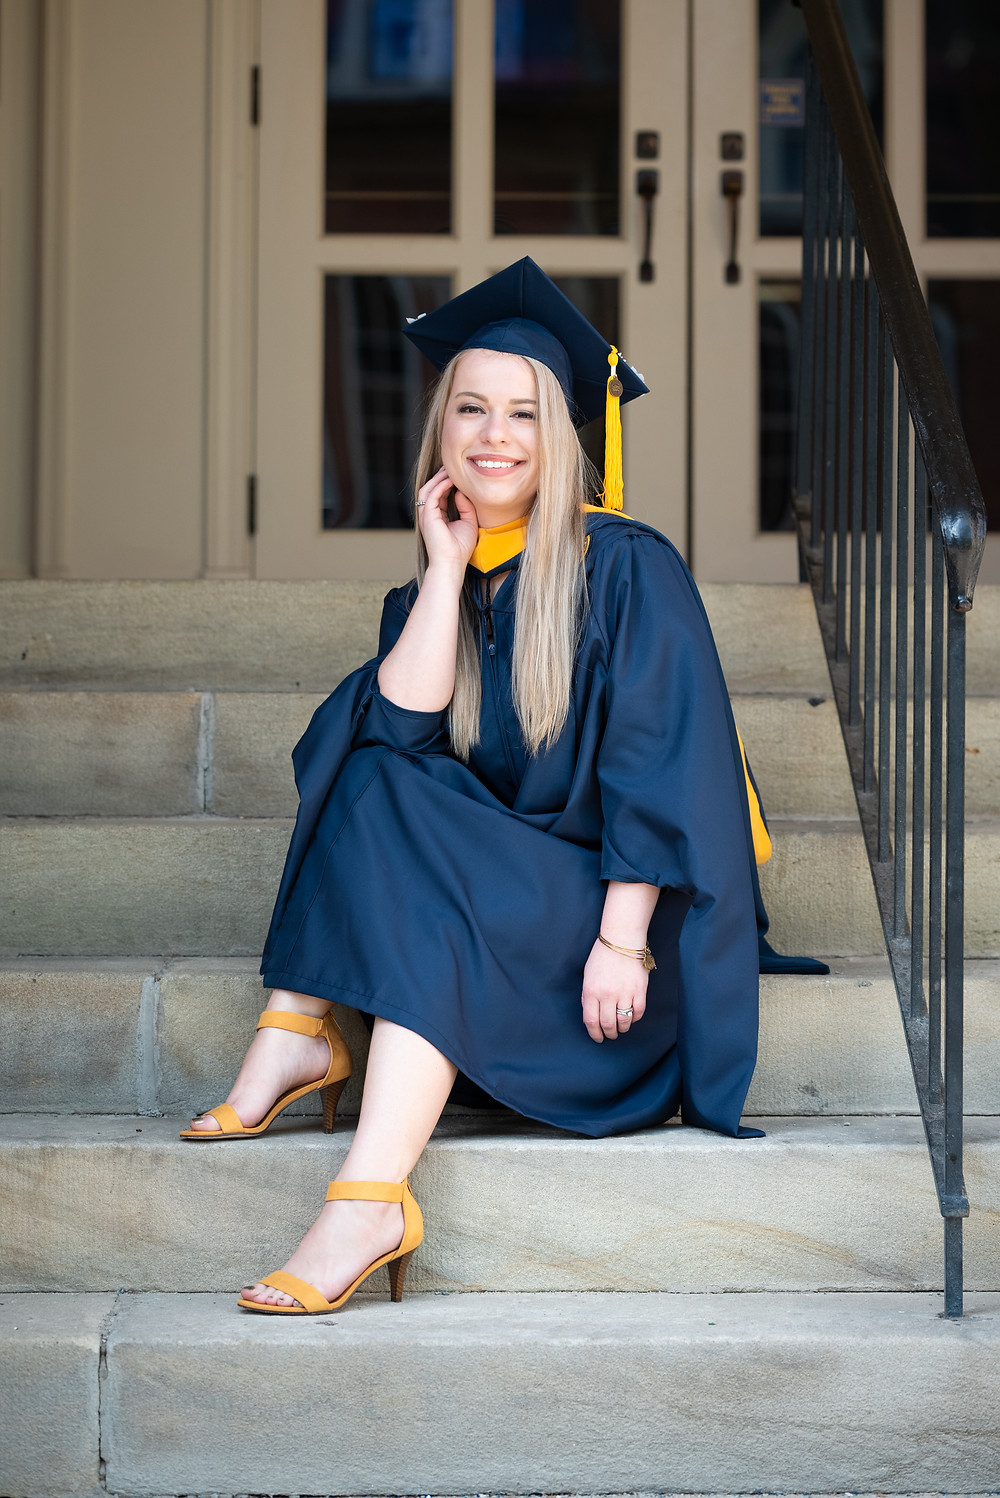 Girl sitting on steps at WVU in her graduation cap and gown